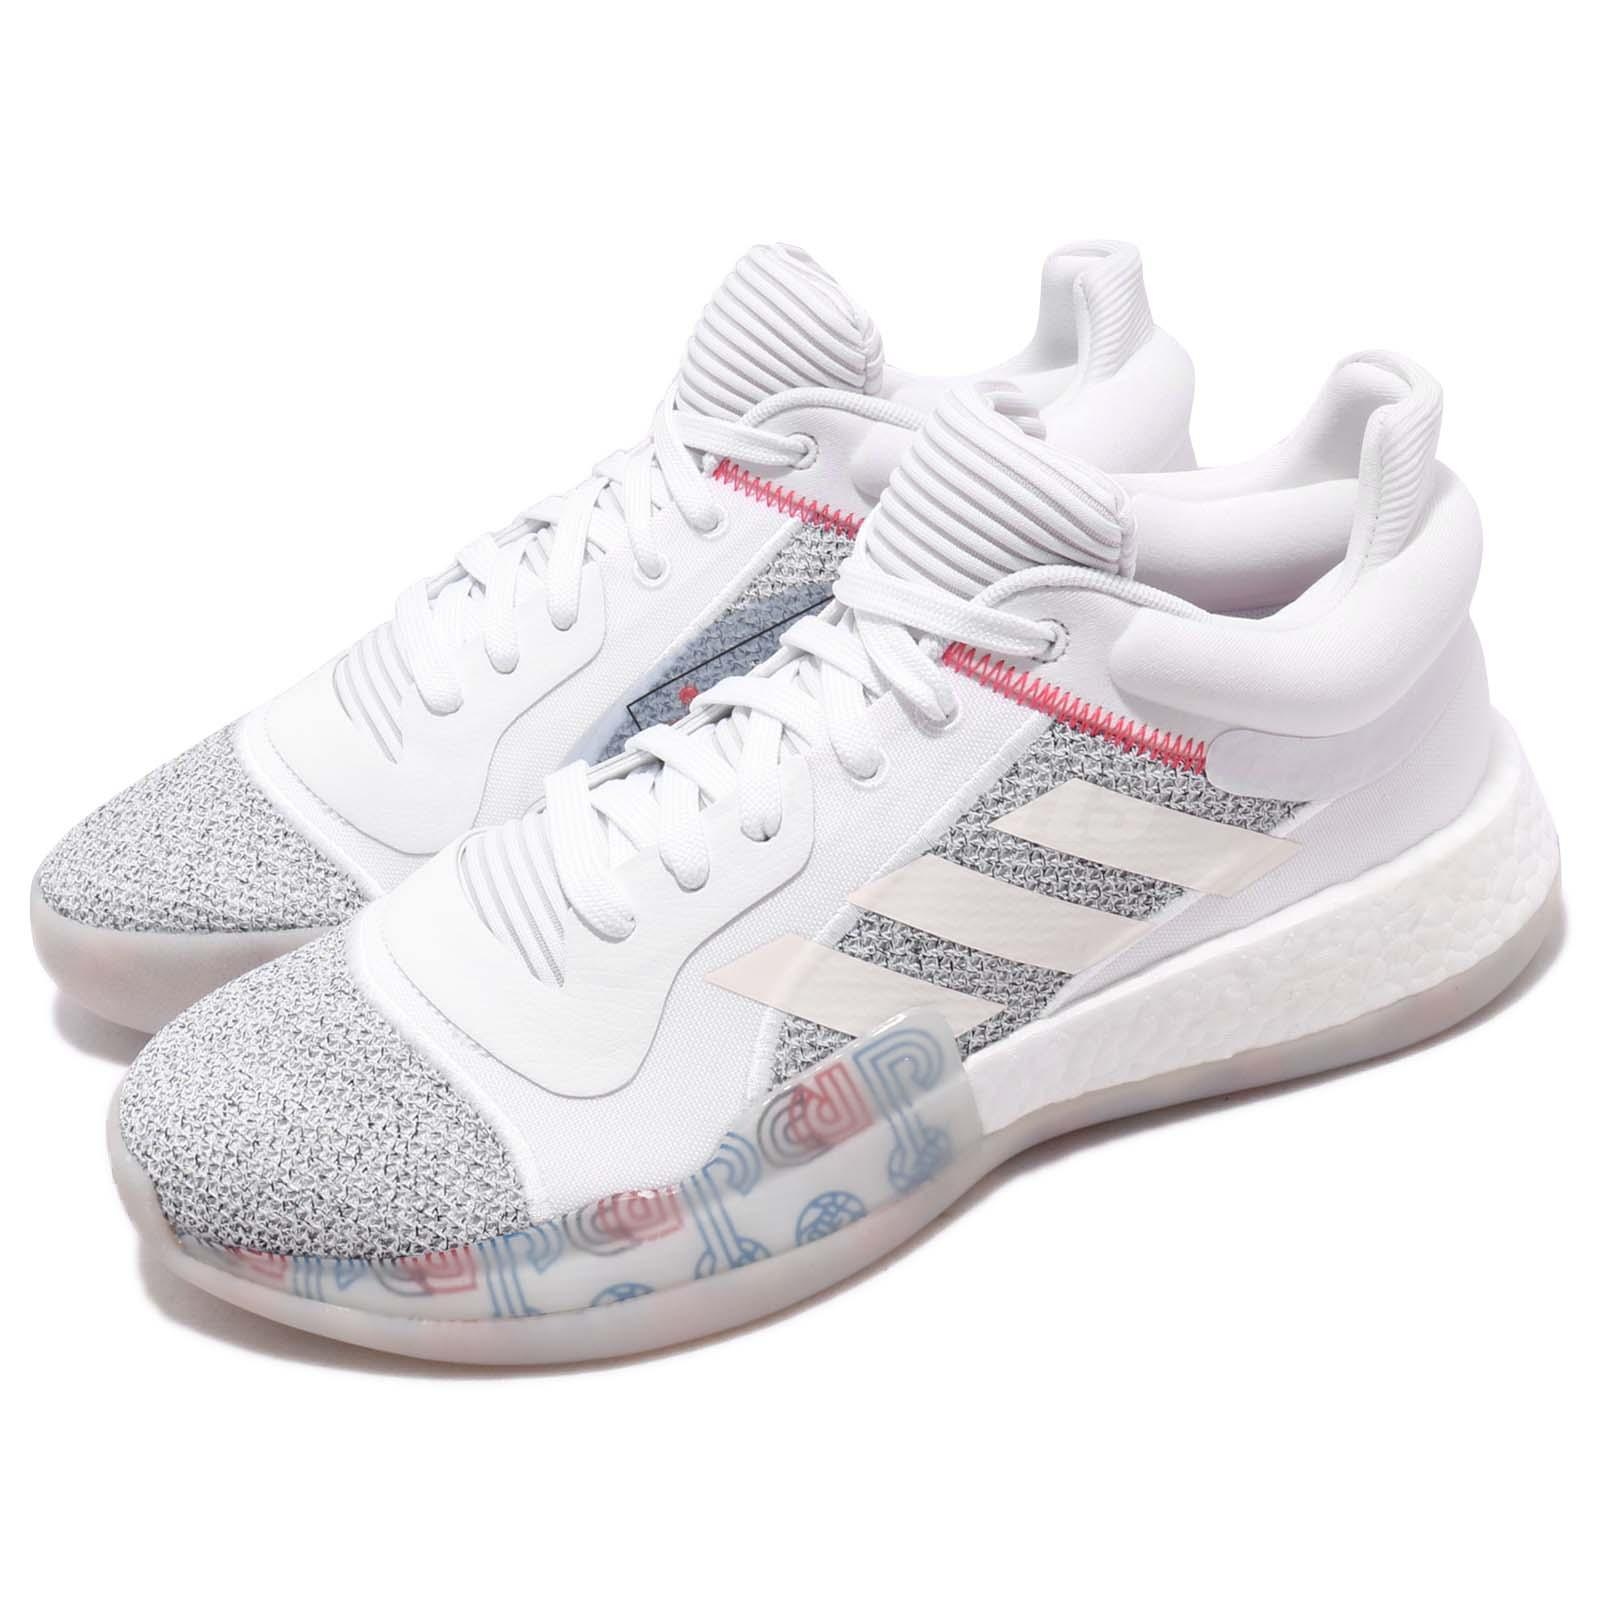 Athletic Shoes Men's Shoes Adidas Marquee Boost Low Off White Shock Cyan Men Basketball Shoe Sneaker G27745